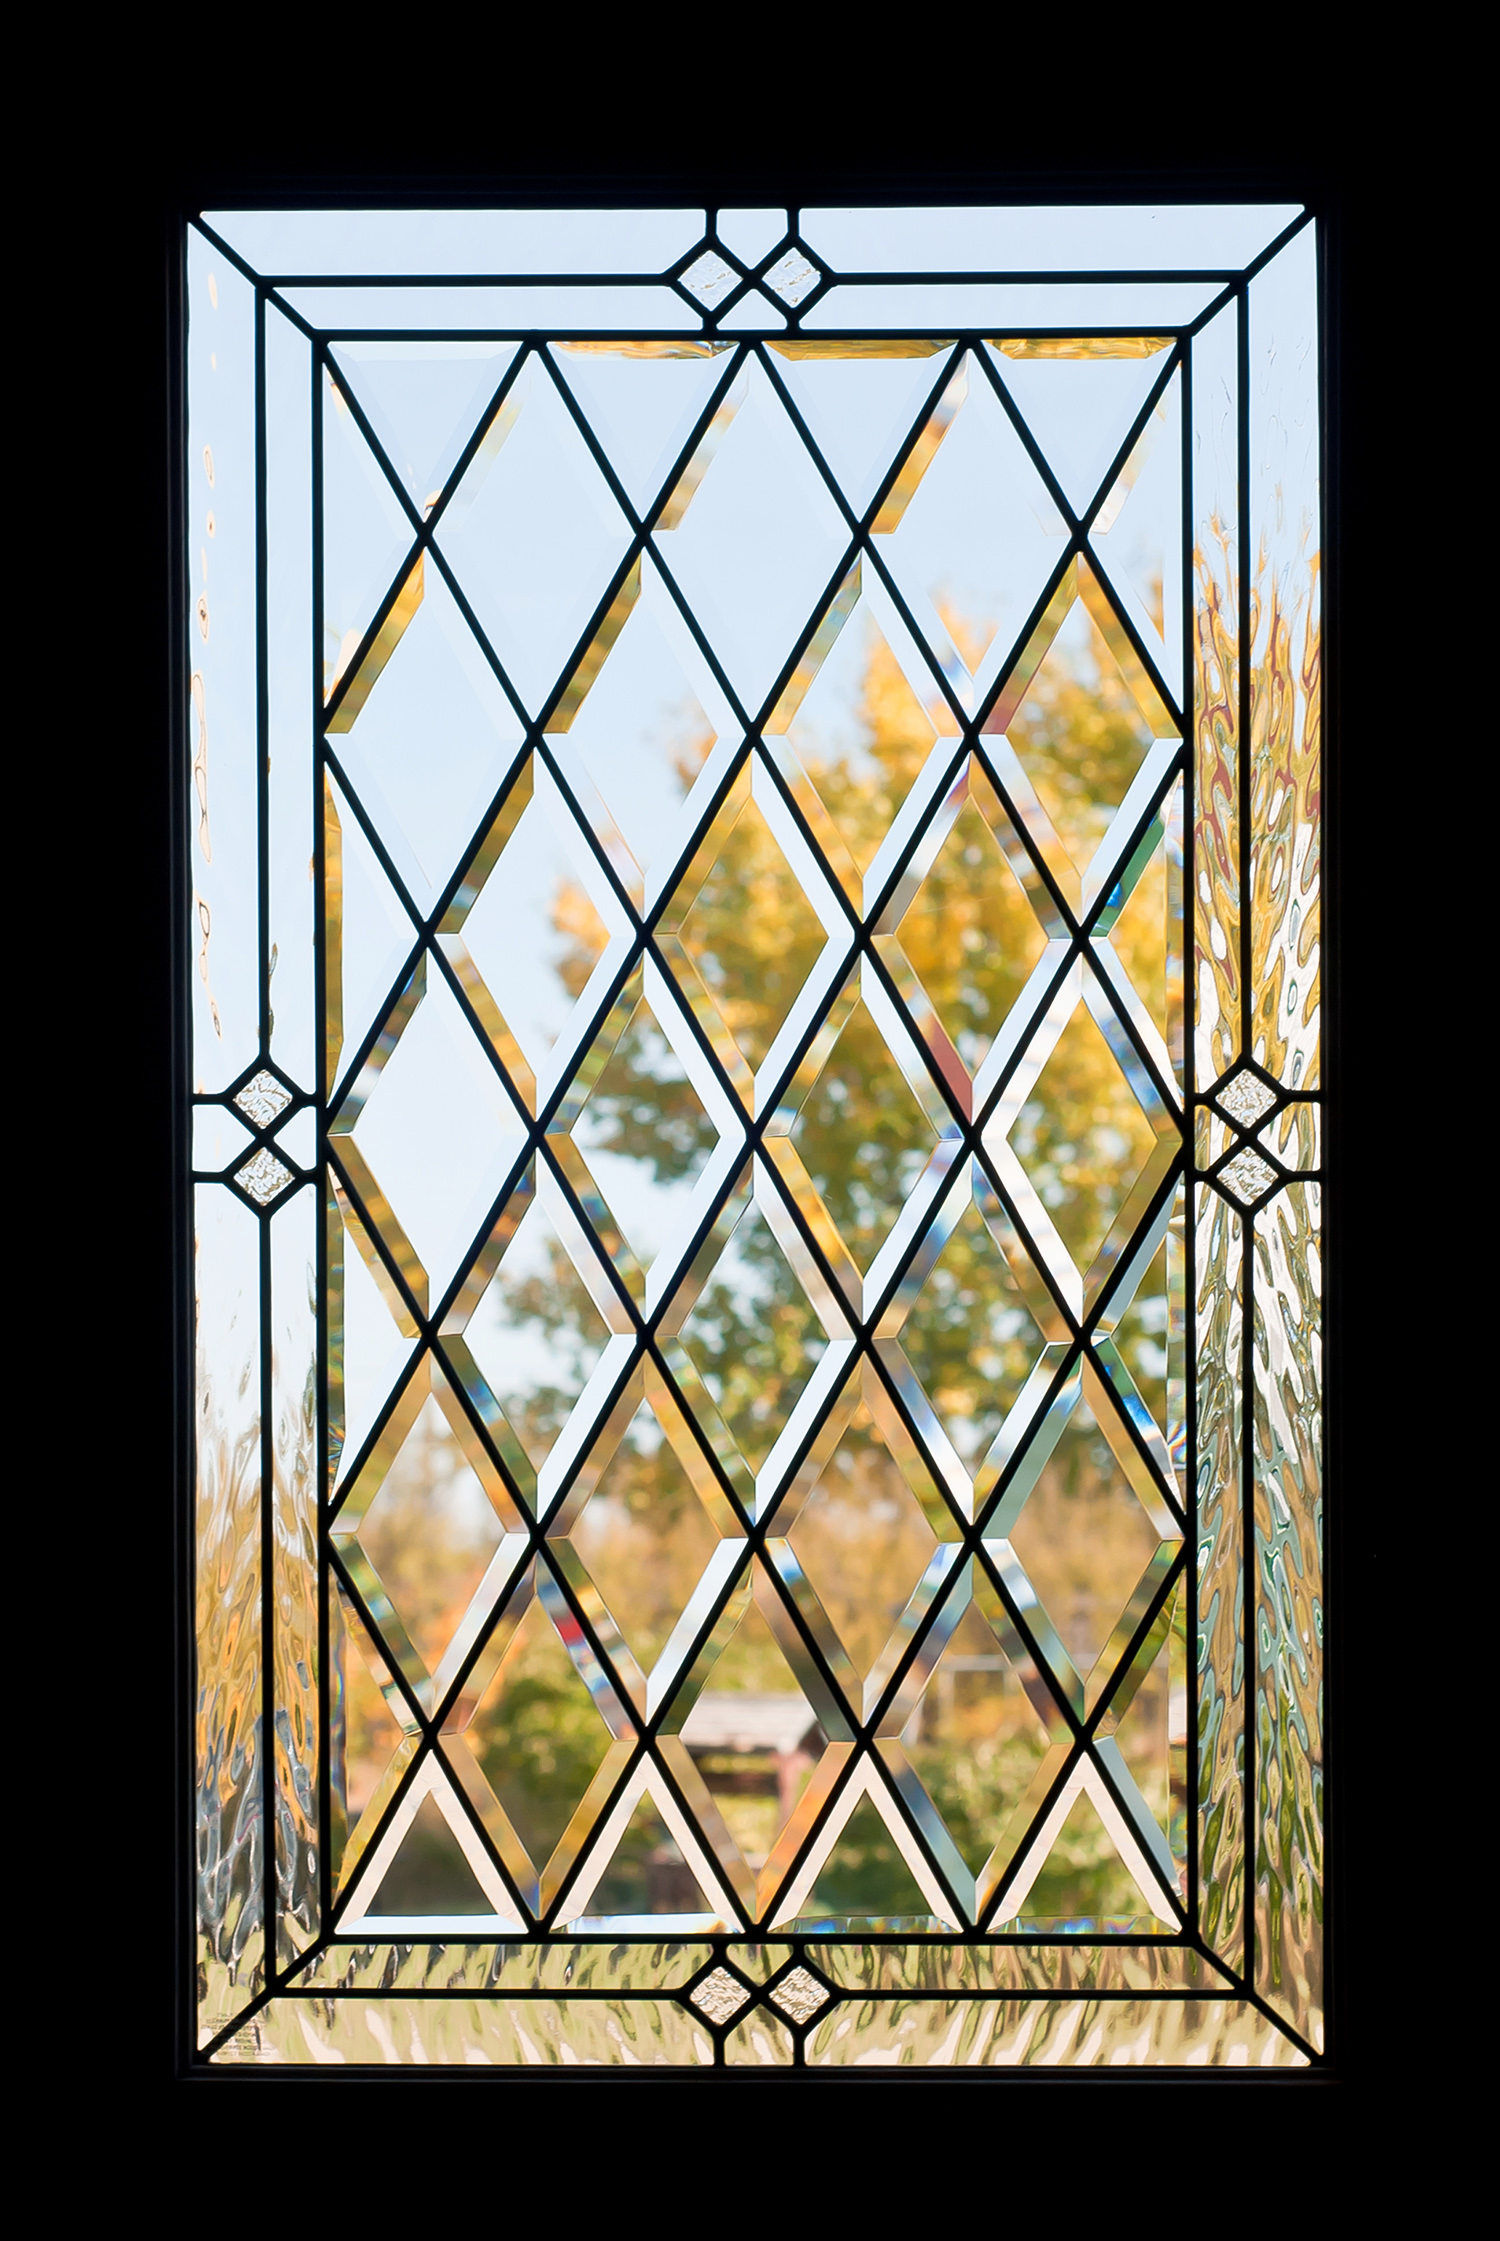 A door window with beveled glass diamond shapes looking outside